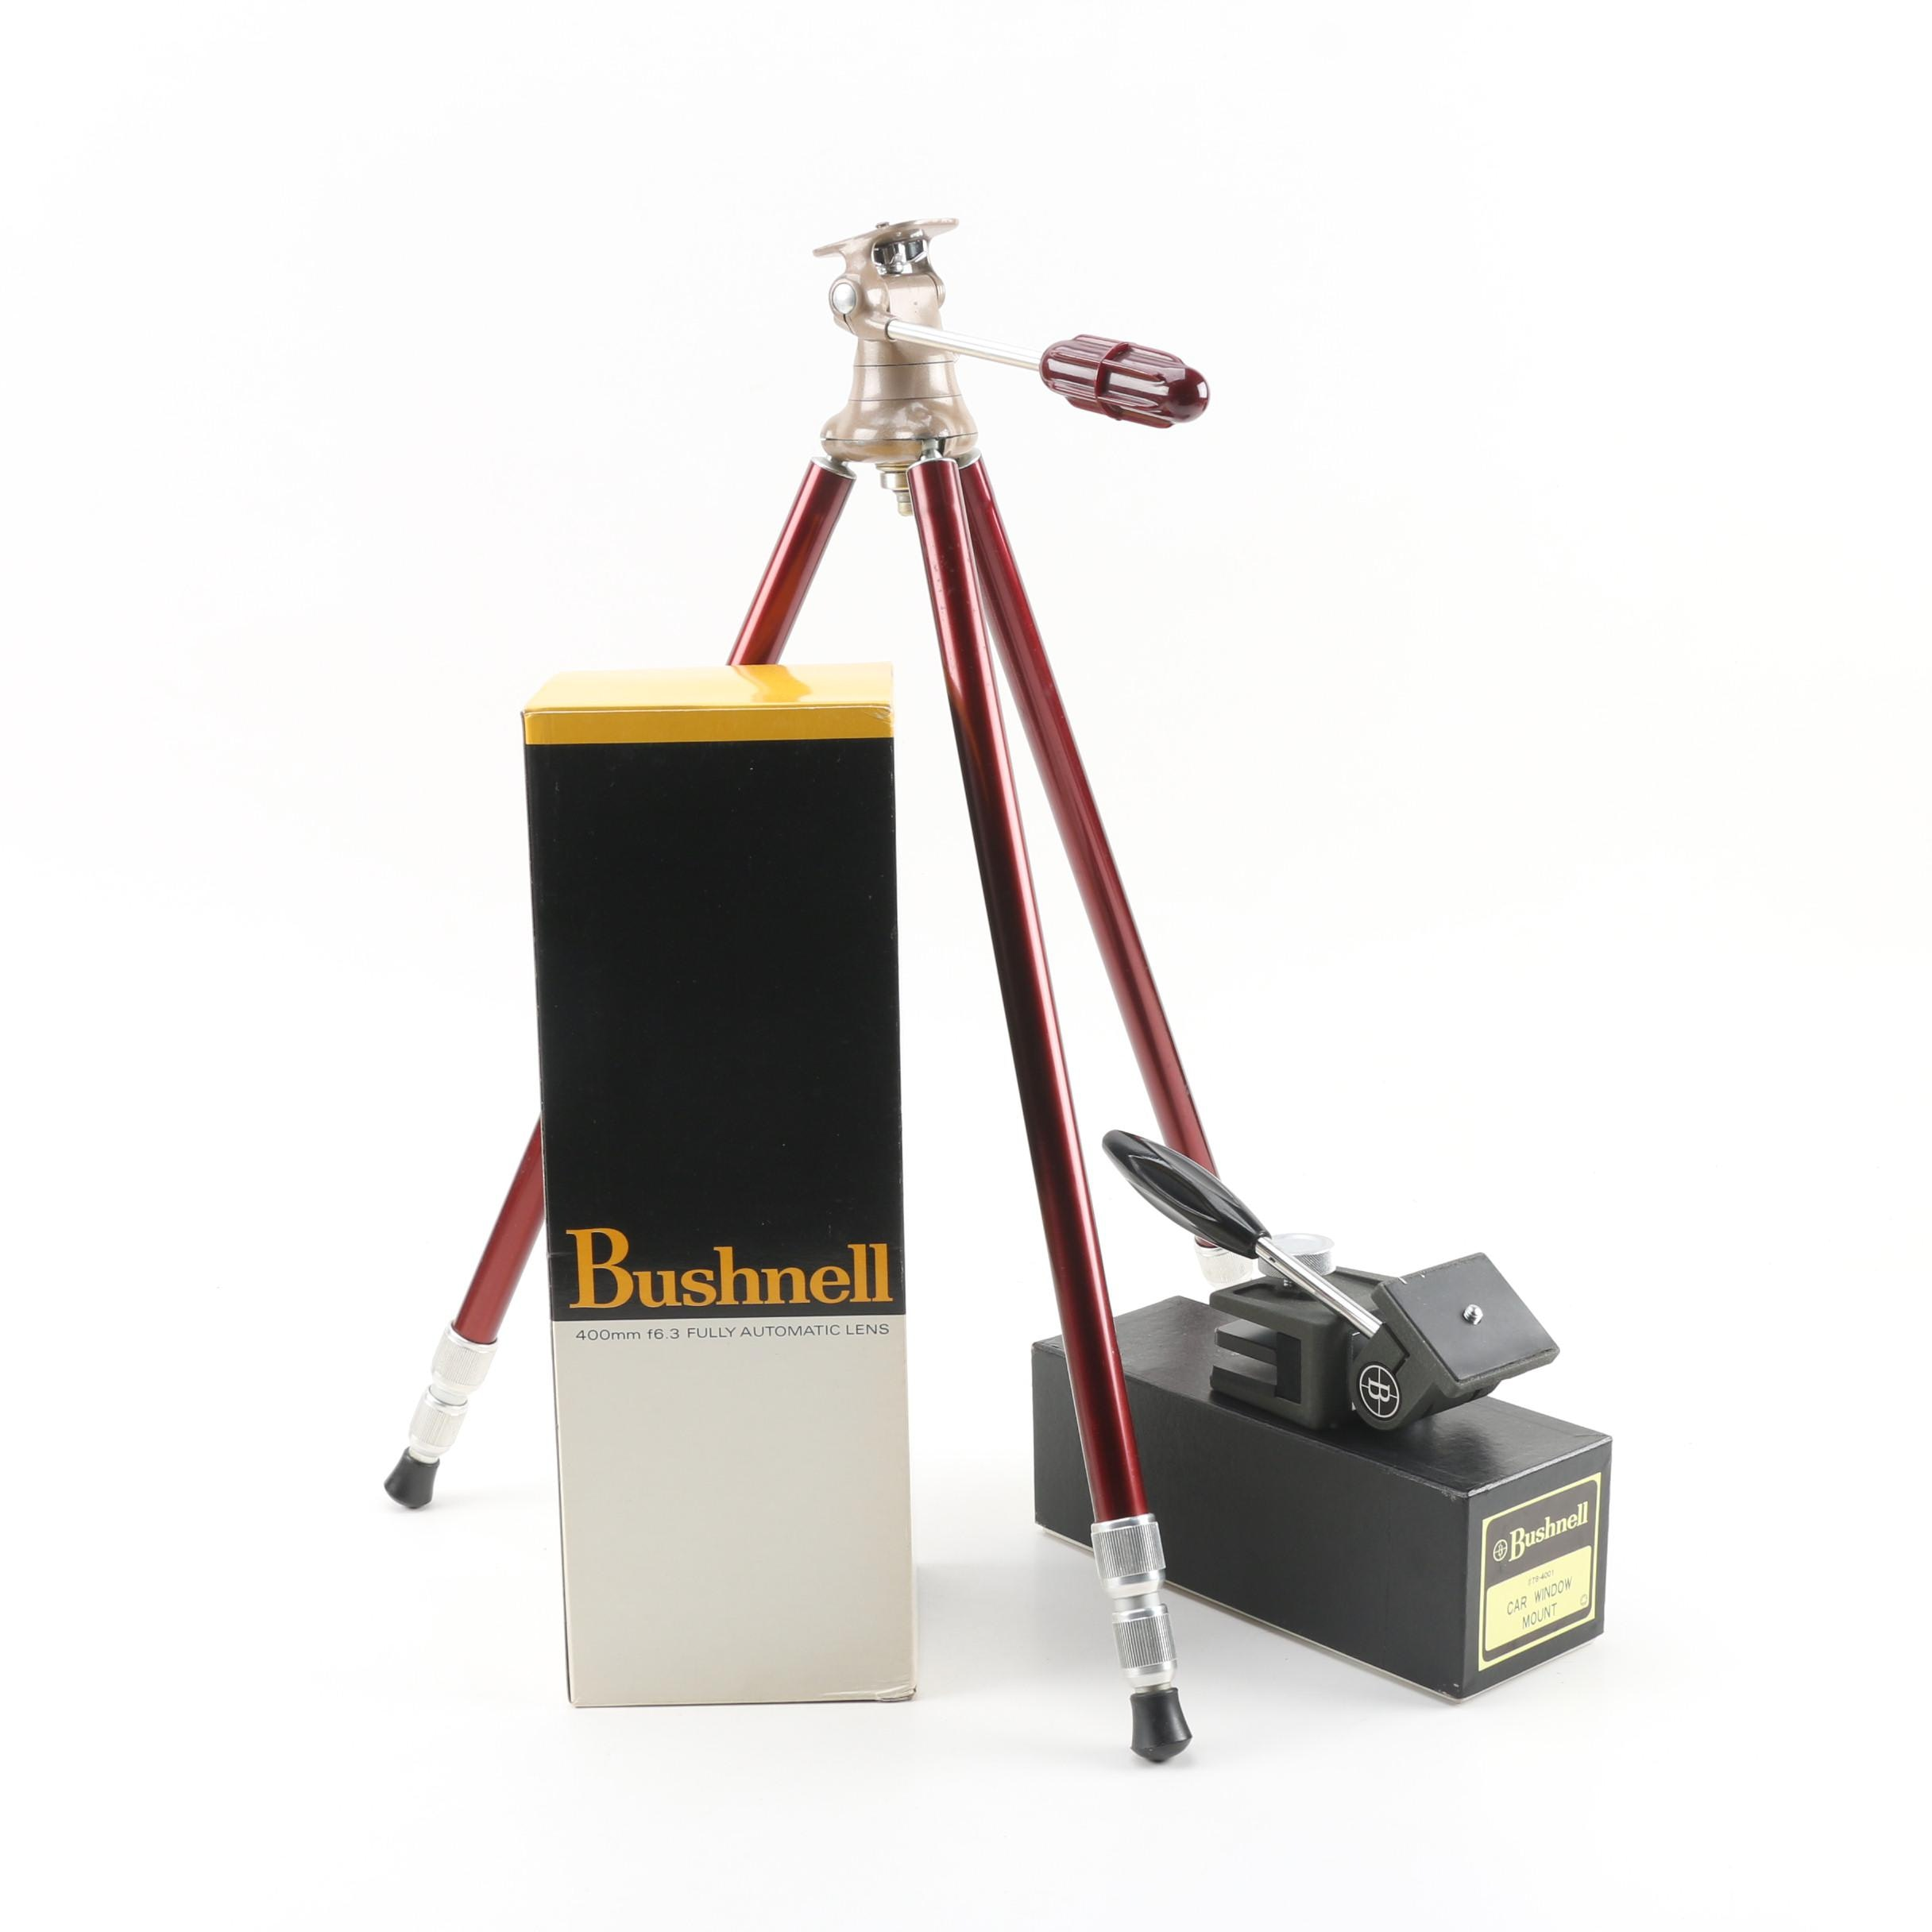 Bushnell 400mm Automatic Camera Lens and Car Mount with Hollywood Junior Tripod